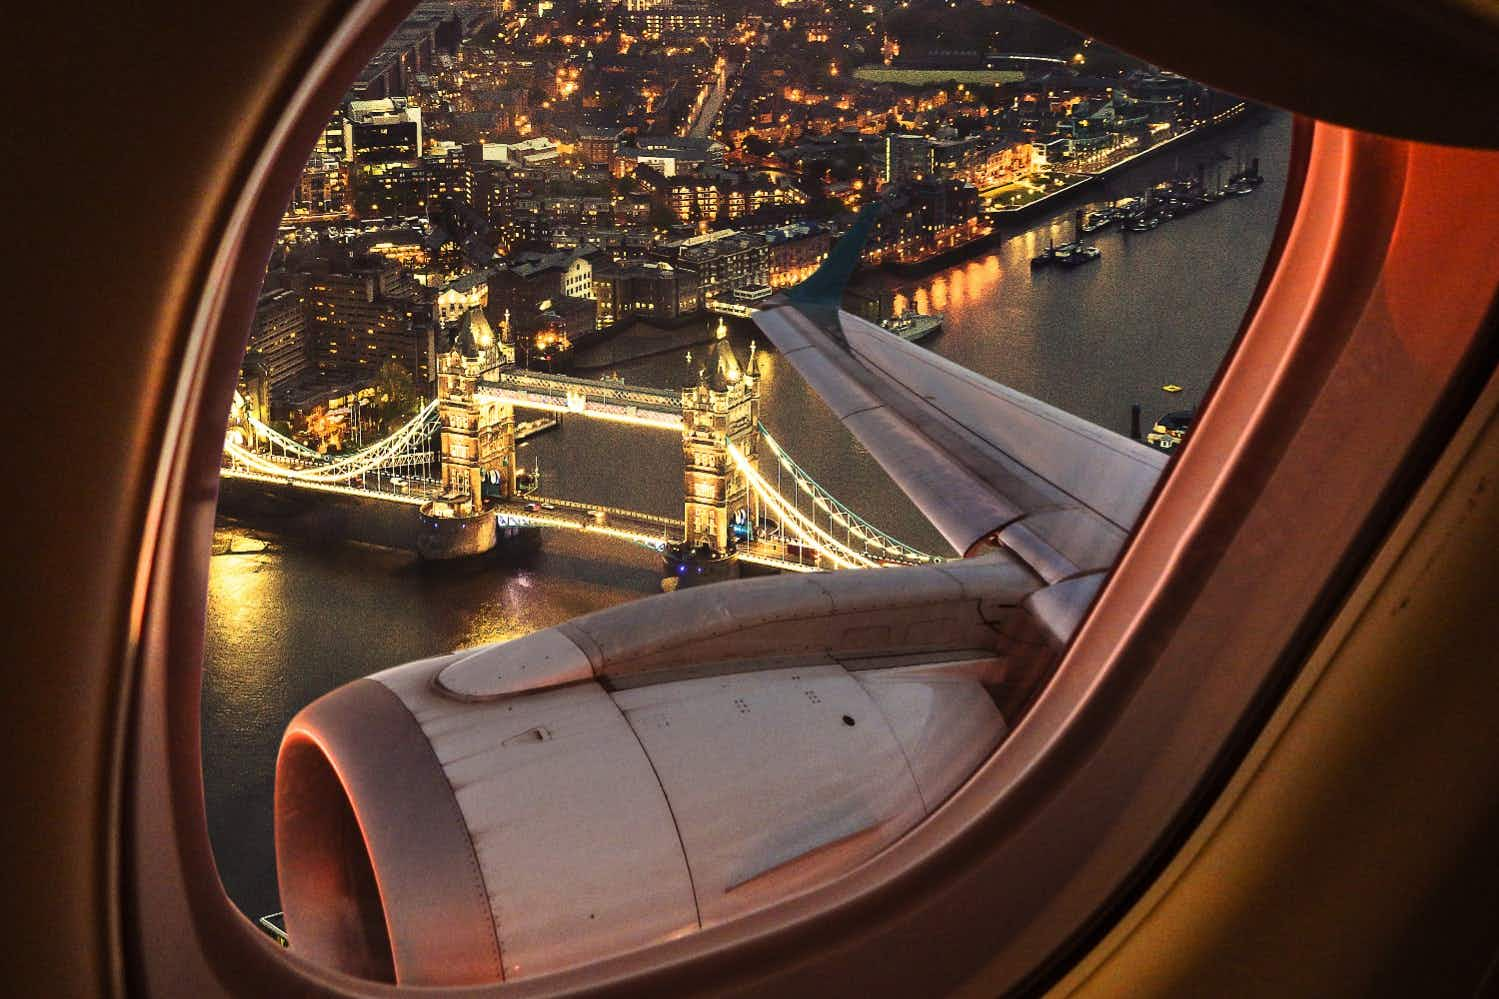 Discover the landmarks and interesting things you're flying over with this new app